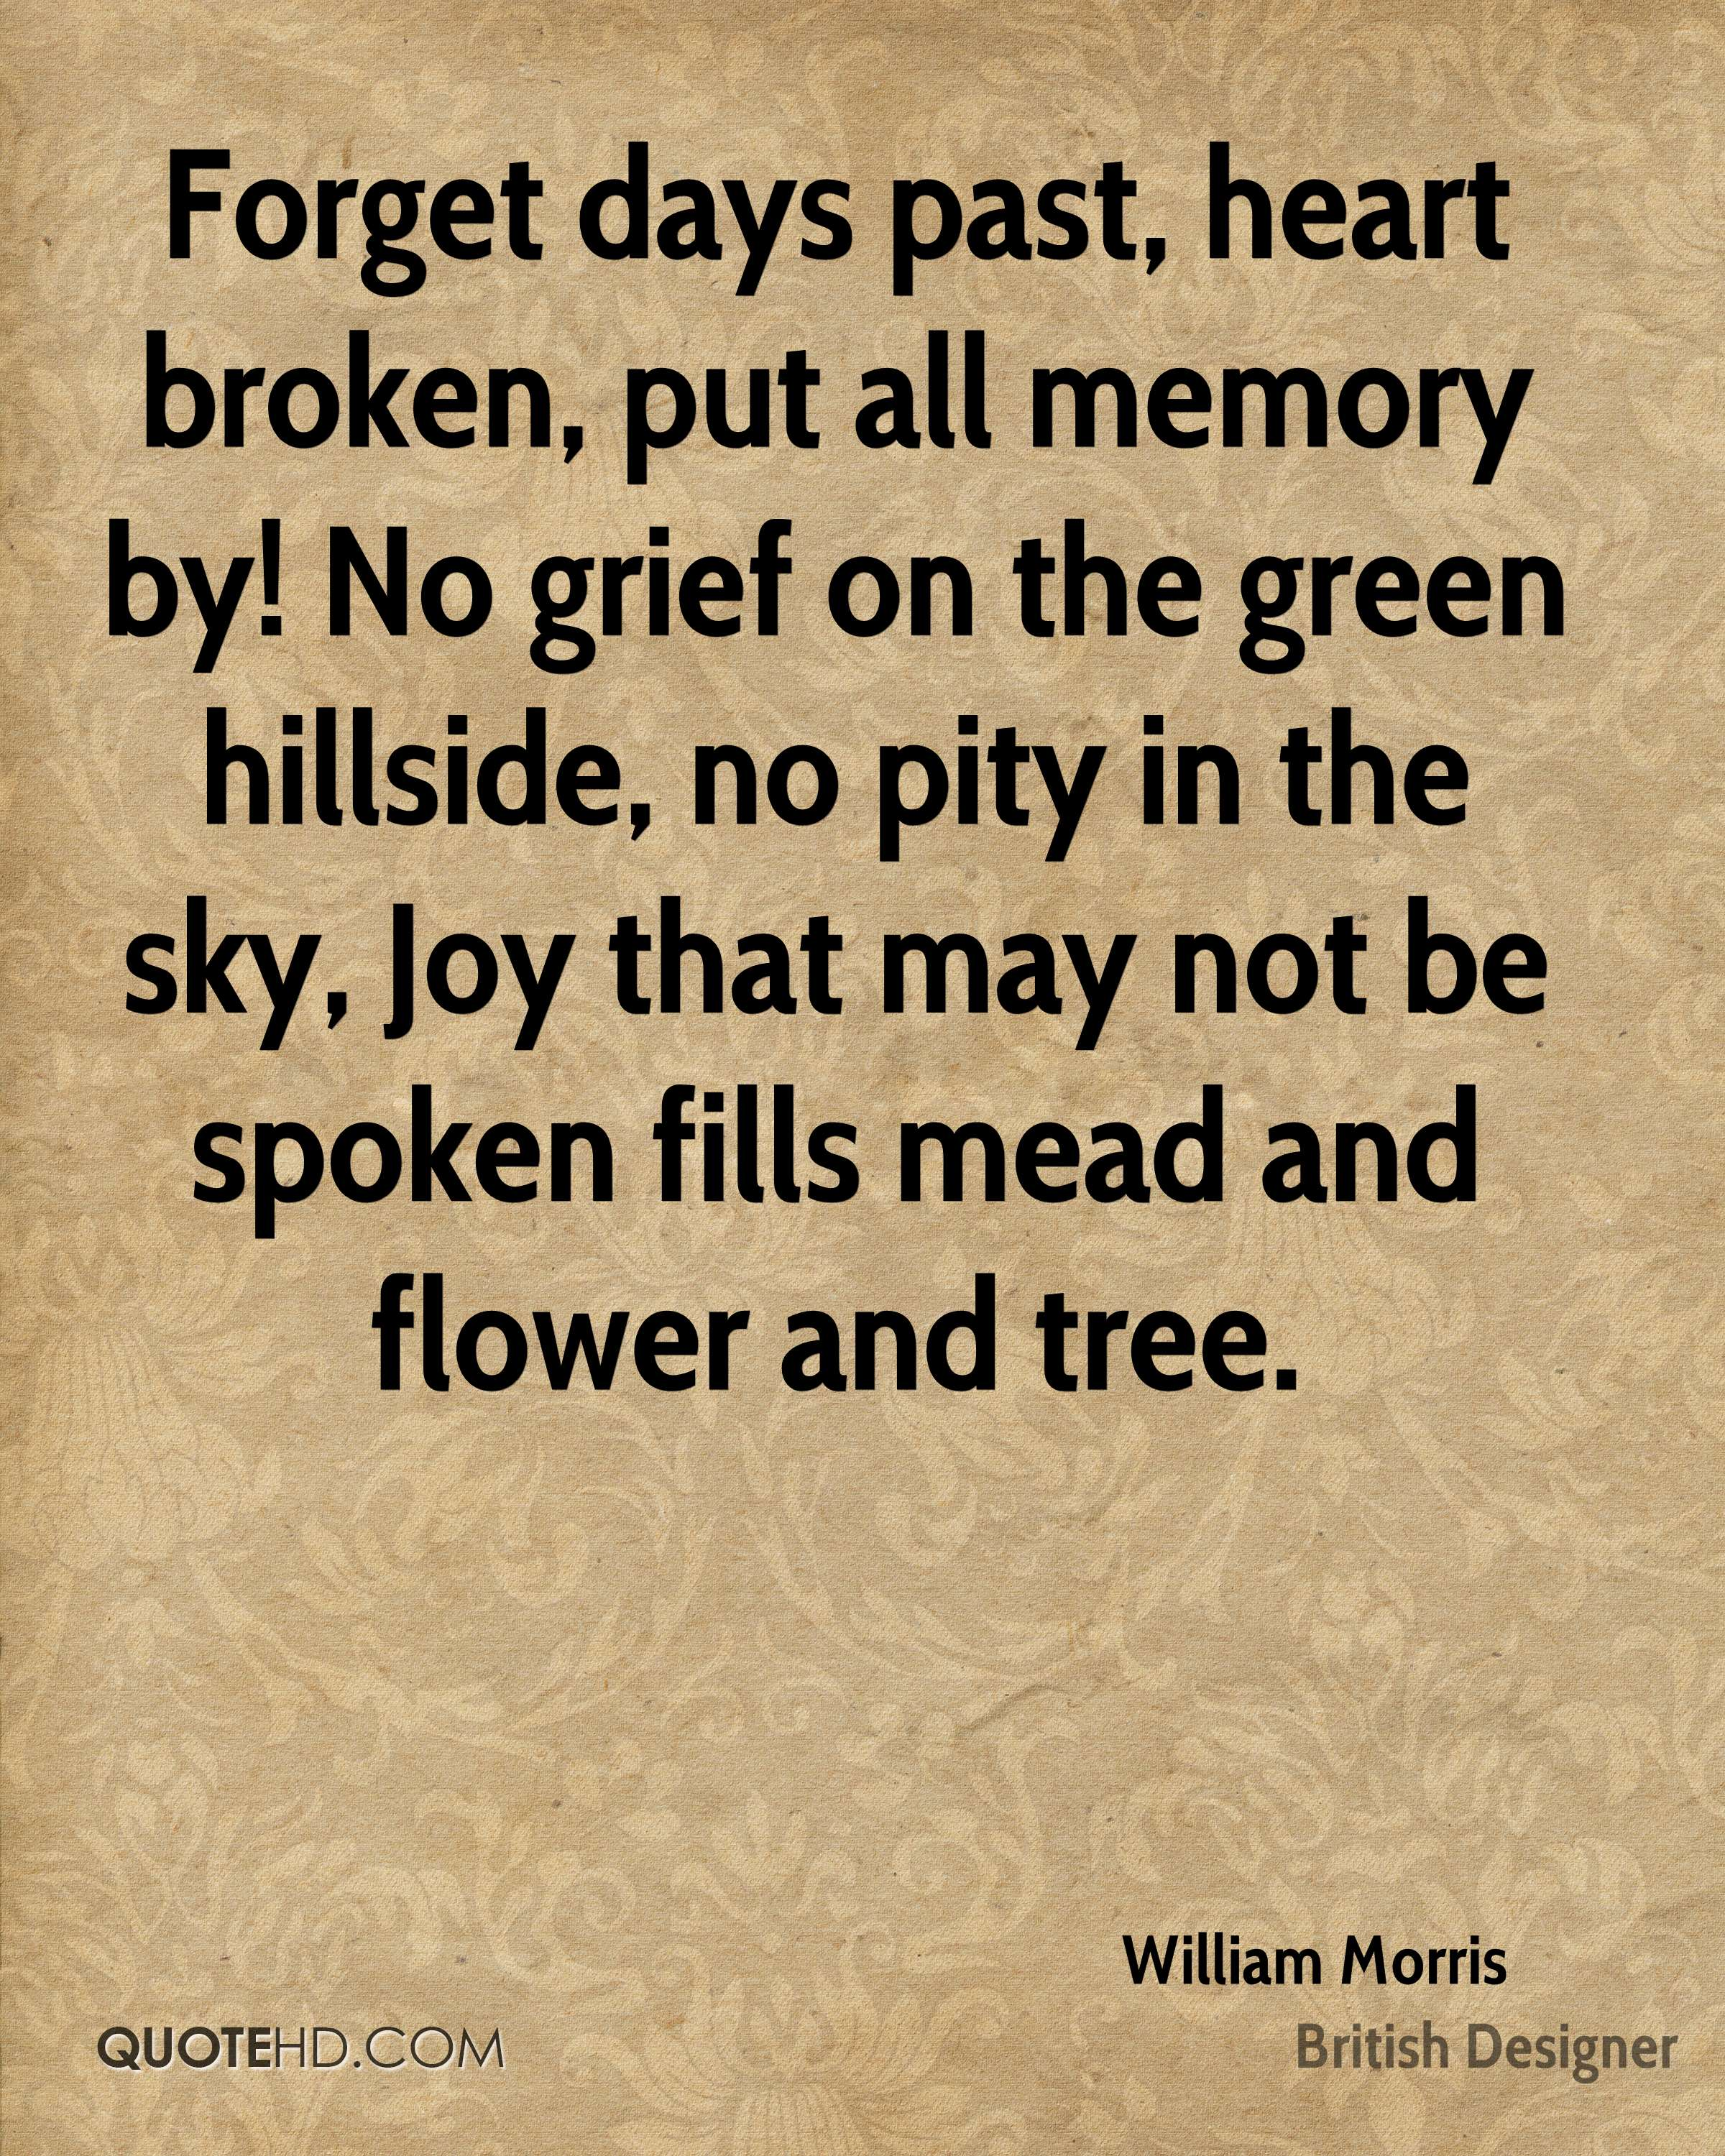 Forget days past, heart broken, put all memory by! No grief on the green hillside, no pity in the sky, Joy that may not be spoken fills mead and flower and tree.